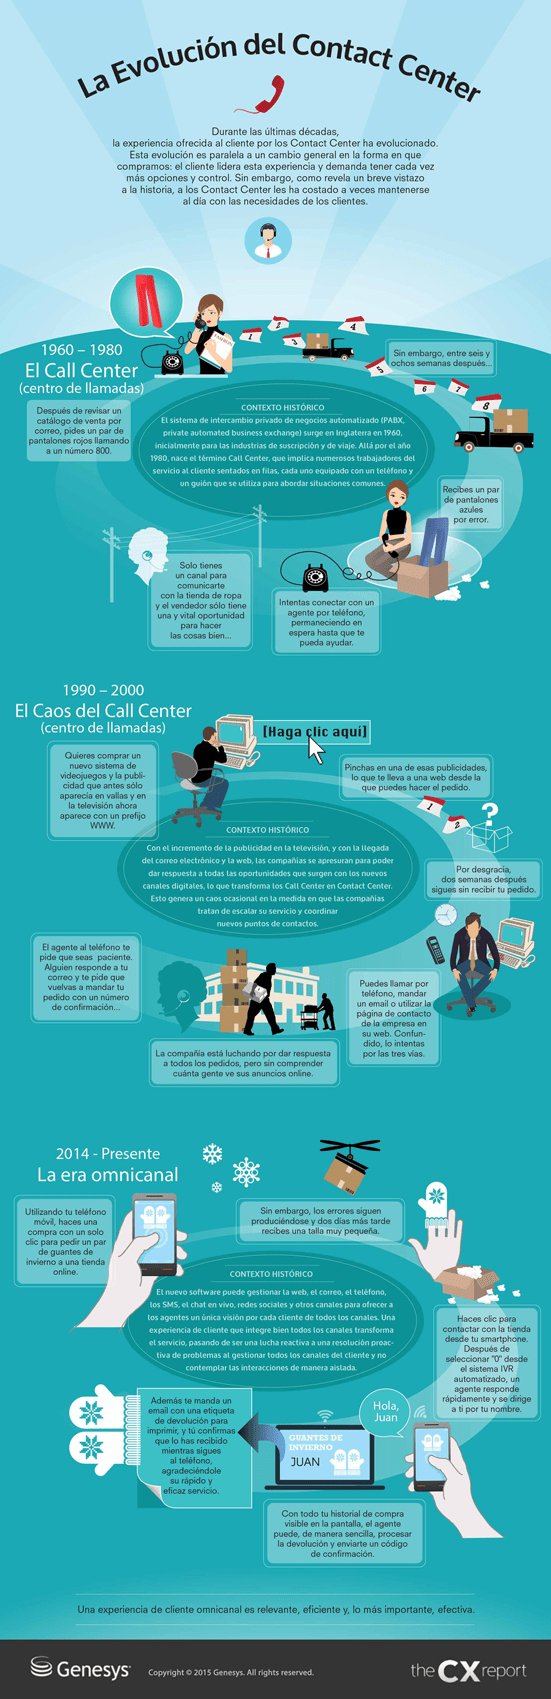 La Evolución del Contact Center